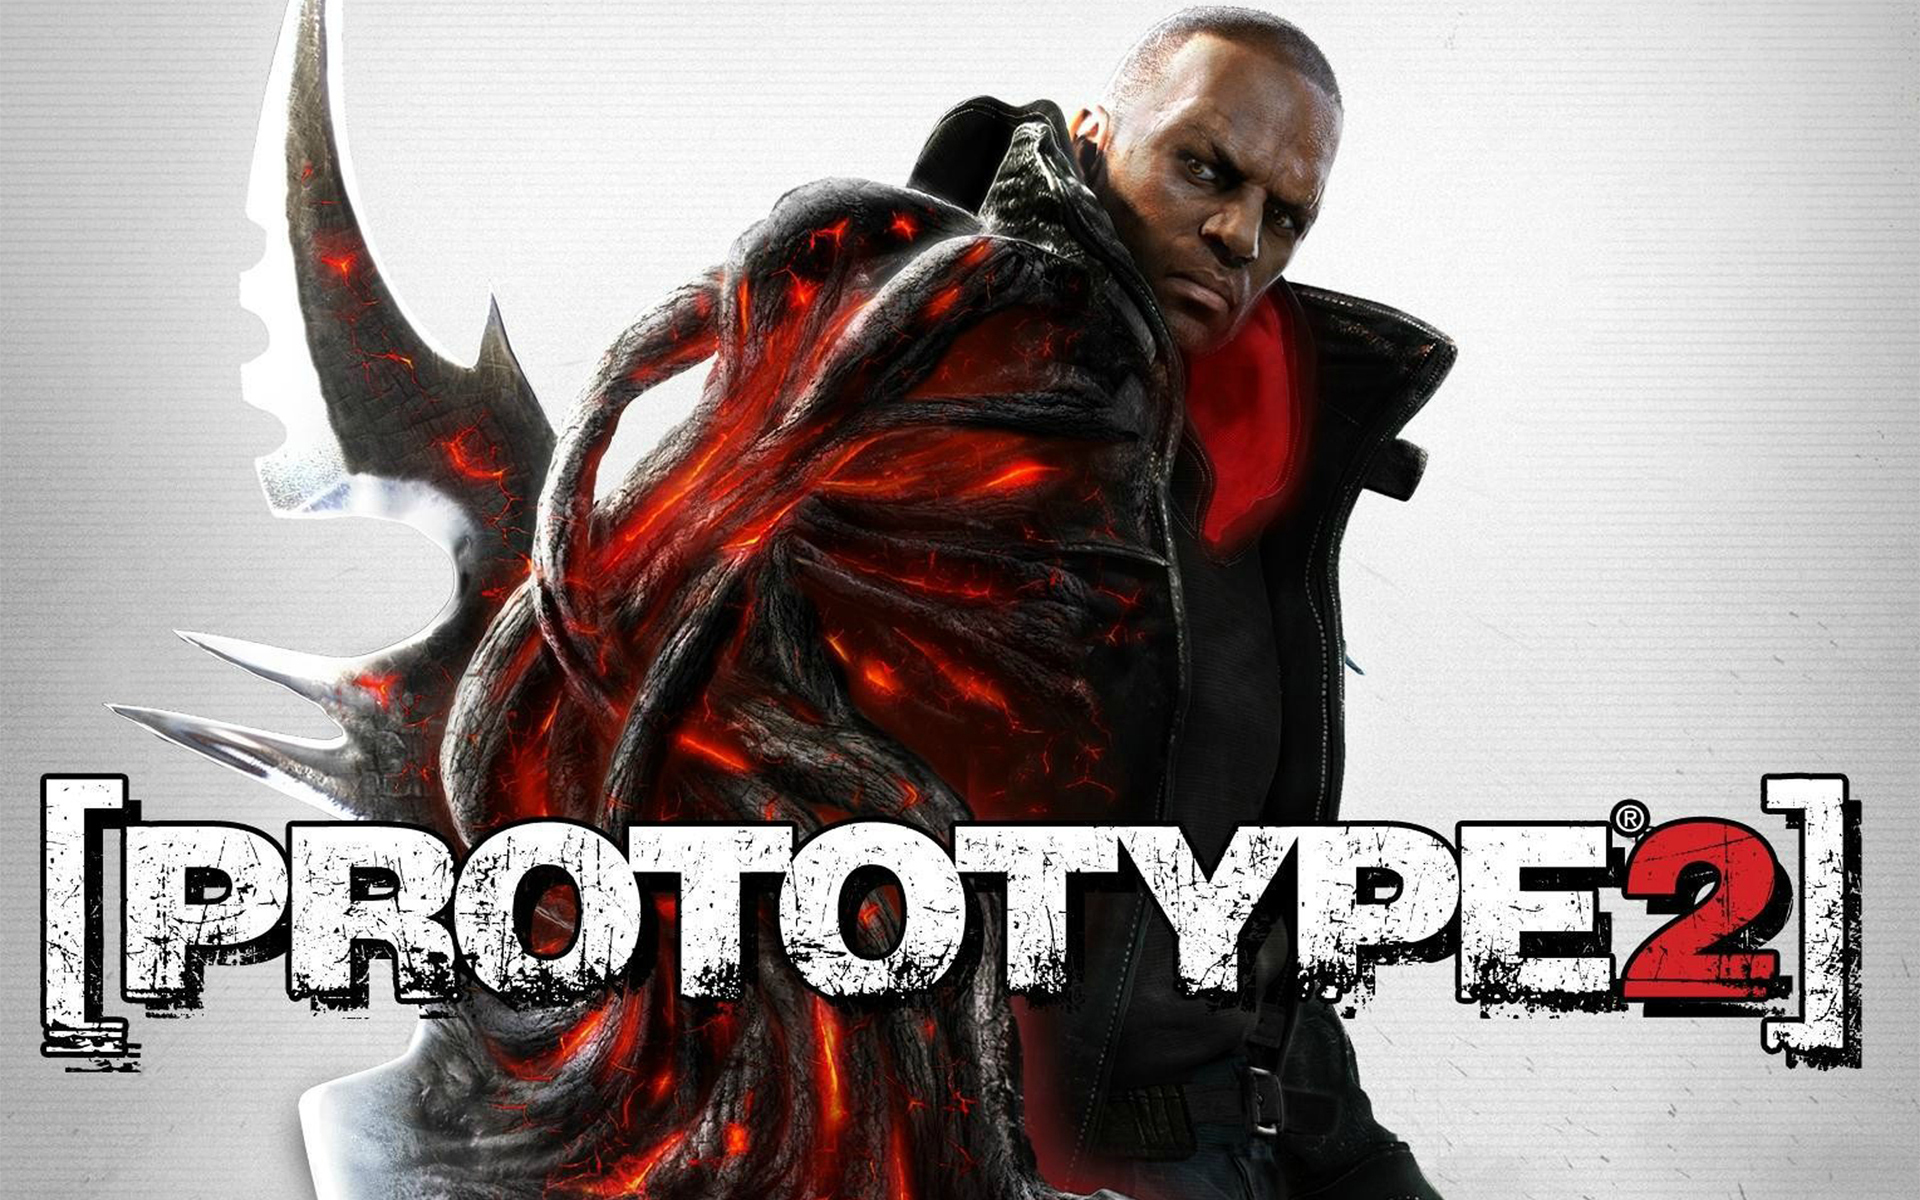 In Prototype 2 you will see a new protagonist. His name is James Heller. He is the main character of this game. James Heller is in the mission to destroy ...